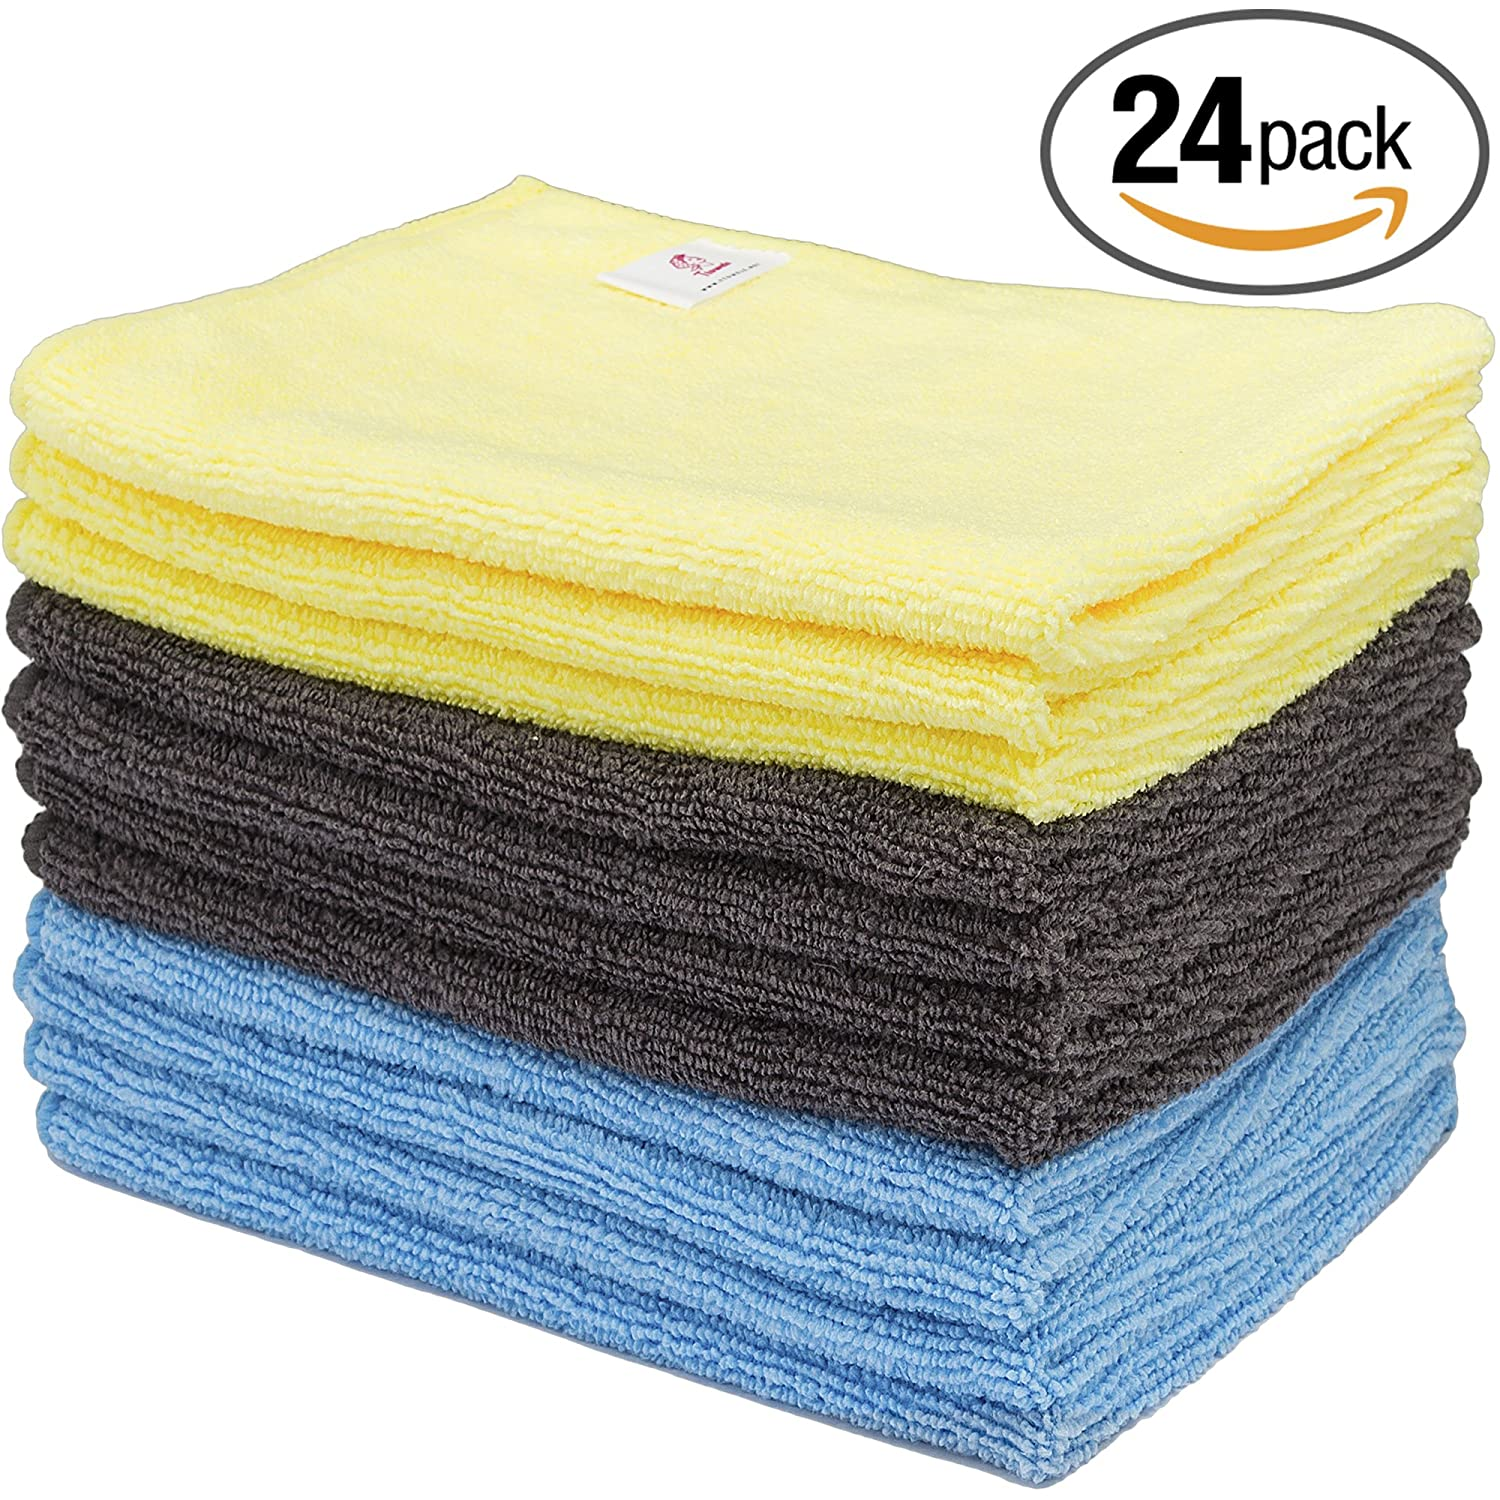 Ttowels Microfiber Cleaning Cloth - 24 Pack 11504001242